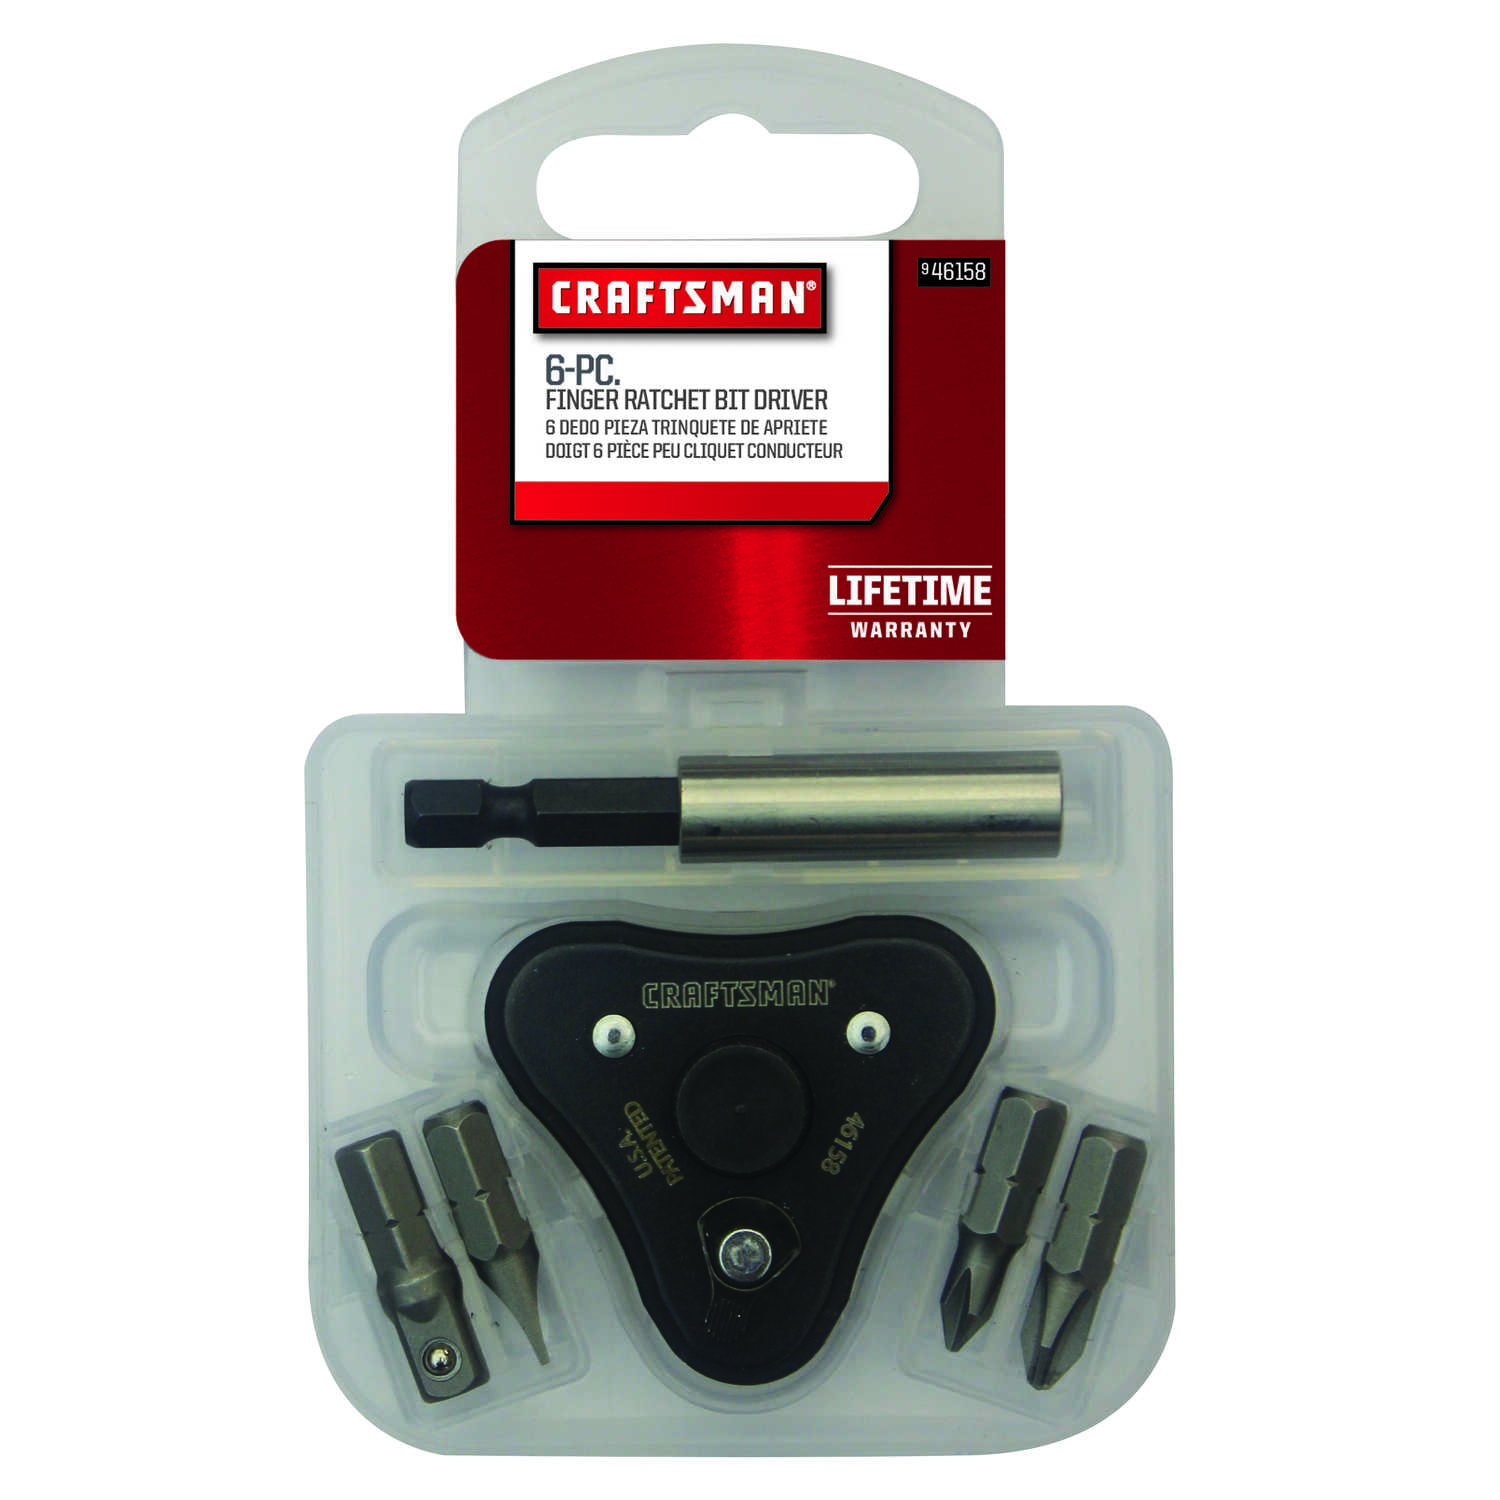 Craftsman  1 in. Ratcheting Finger  Finger Bit Screwdriver  Steel  1  Black  No. 1